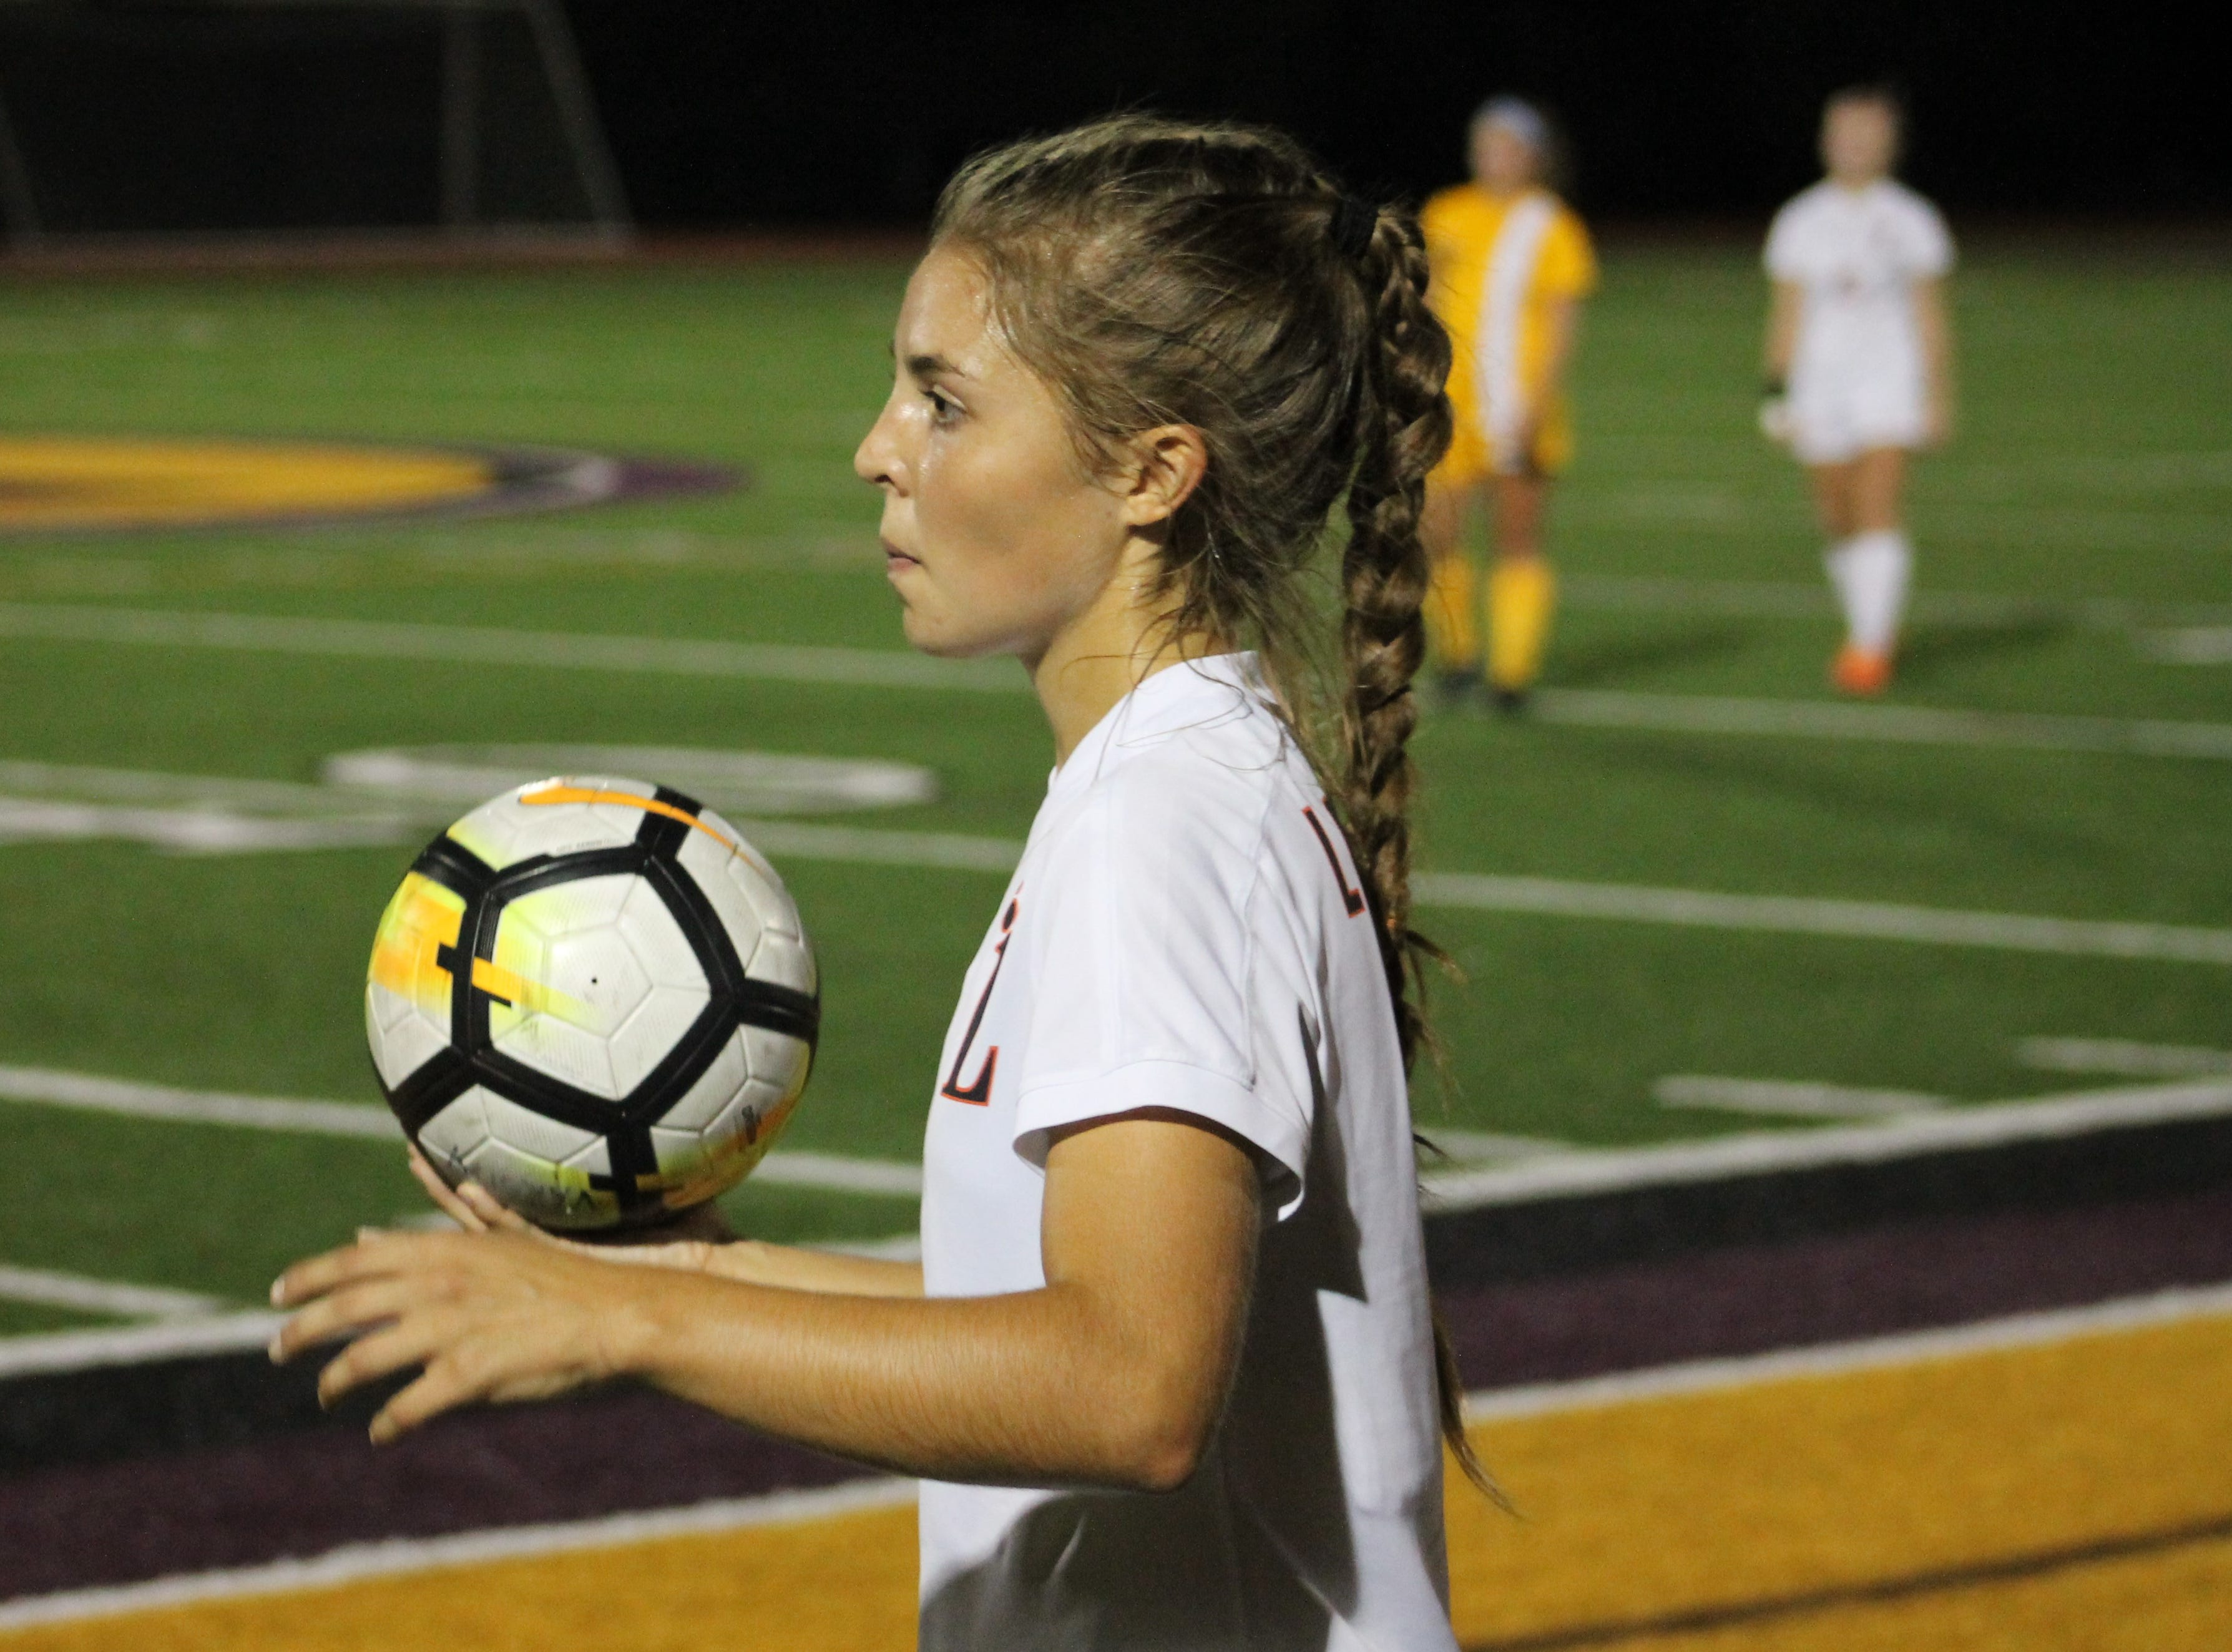 Junior captain Claire Massey throws the ball in for Loveland